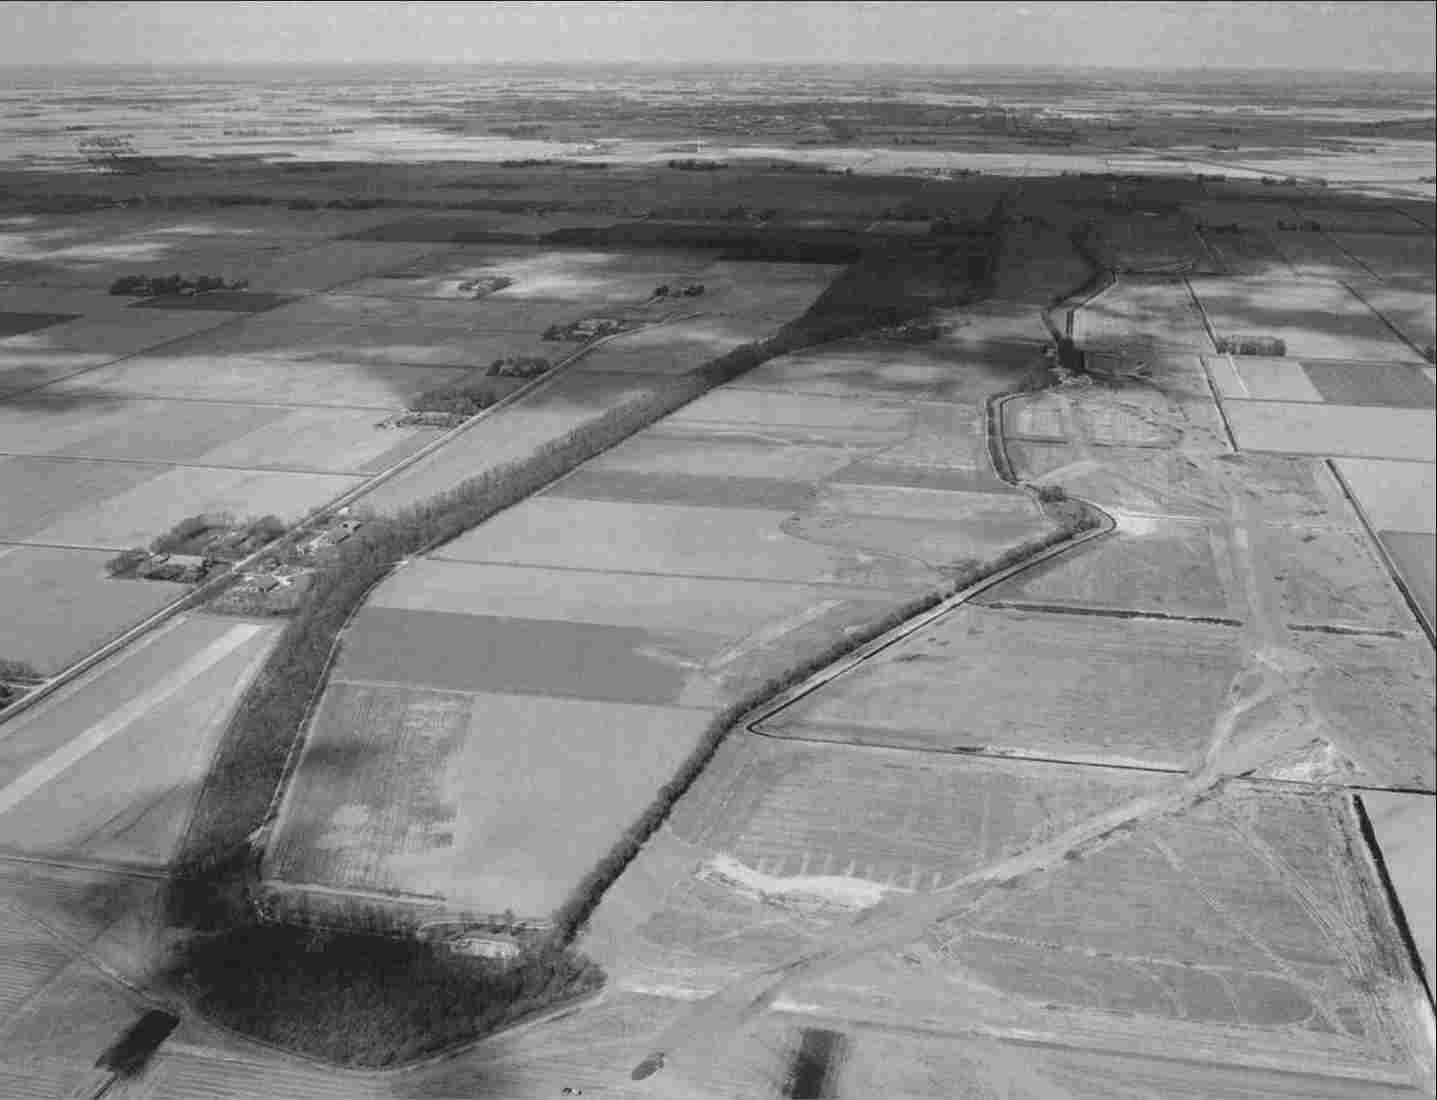 In 1944 it was decided to make Schokland recognizable as a former island with the help of a tree line.